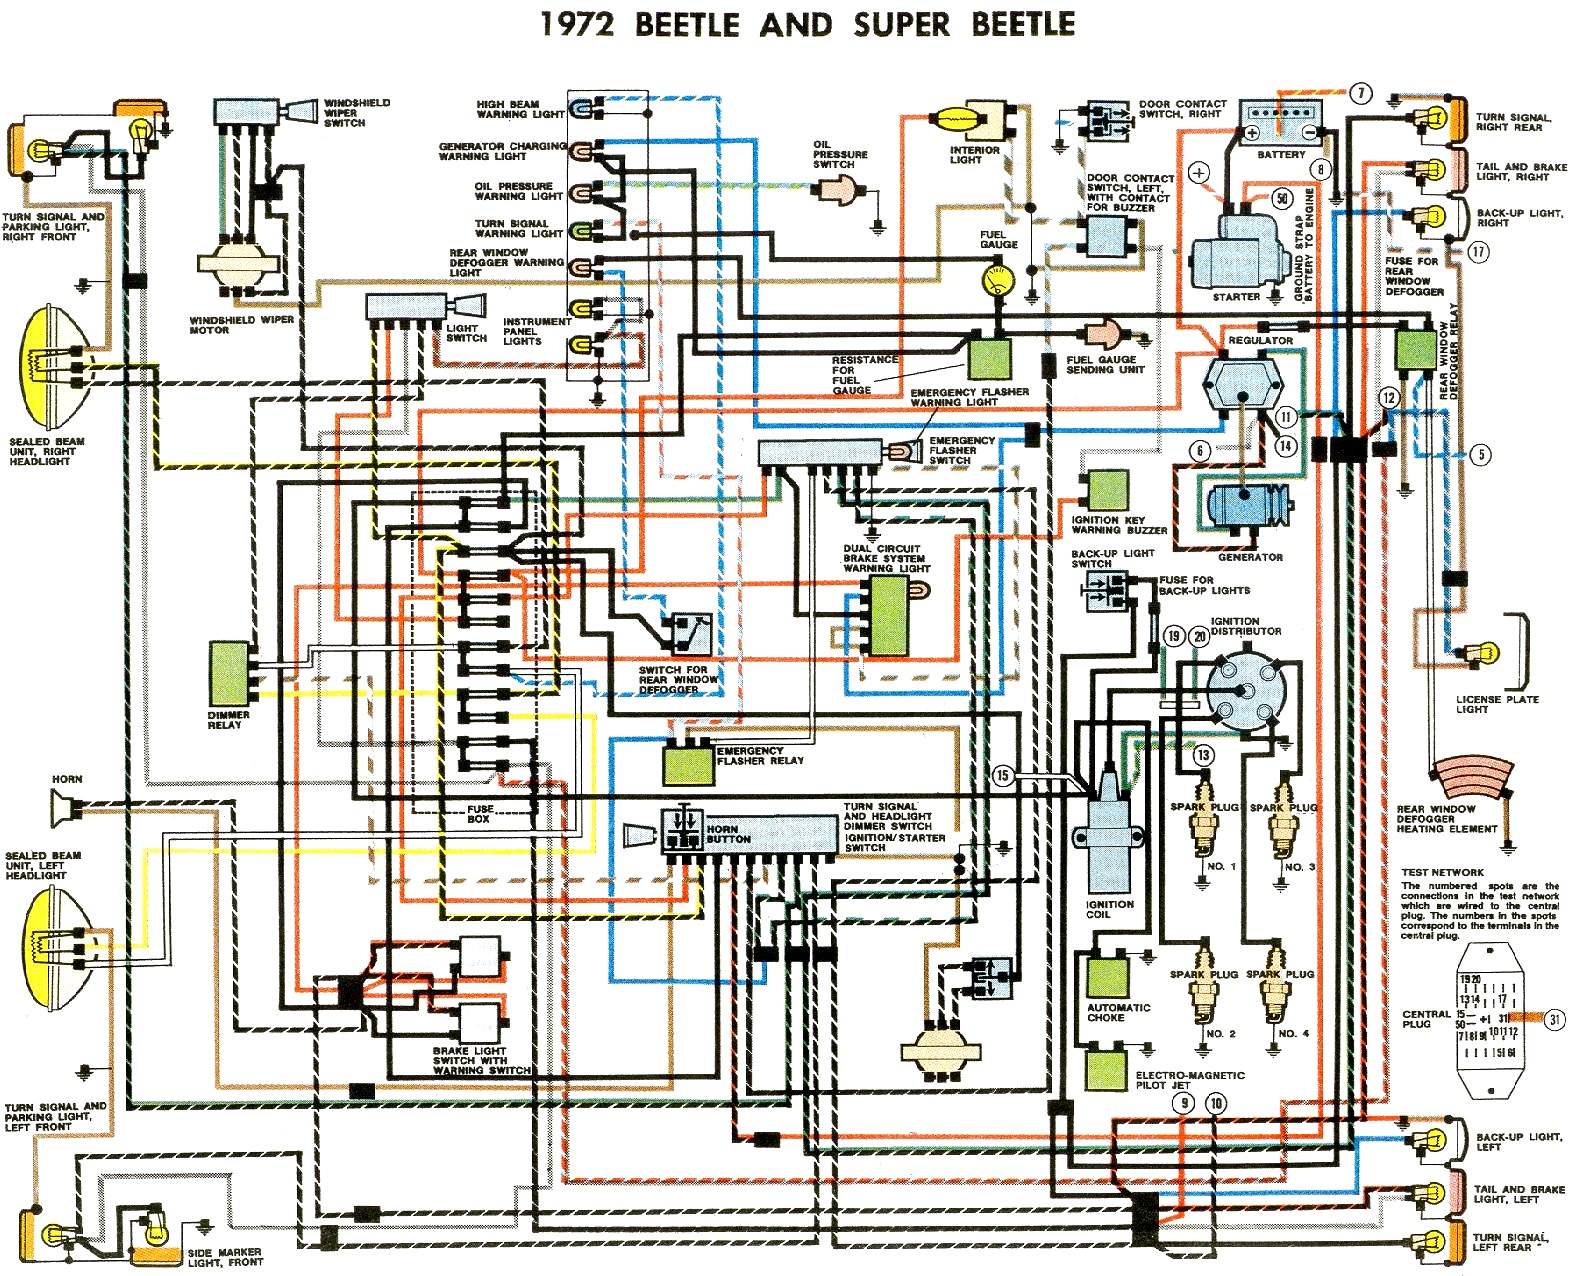 bug_72 1972 beetle wiring diagram thegoldenbug com 1978 vw bus fuse box diagram at couponss.co